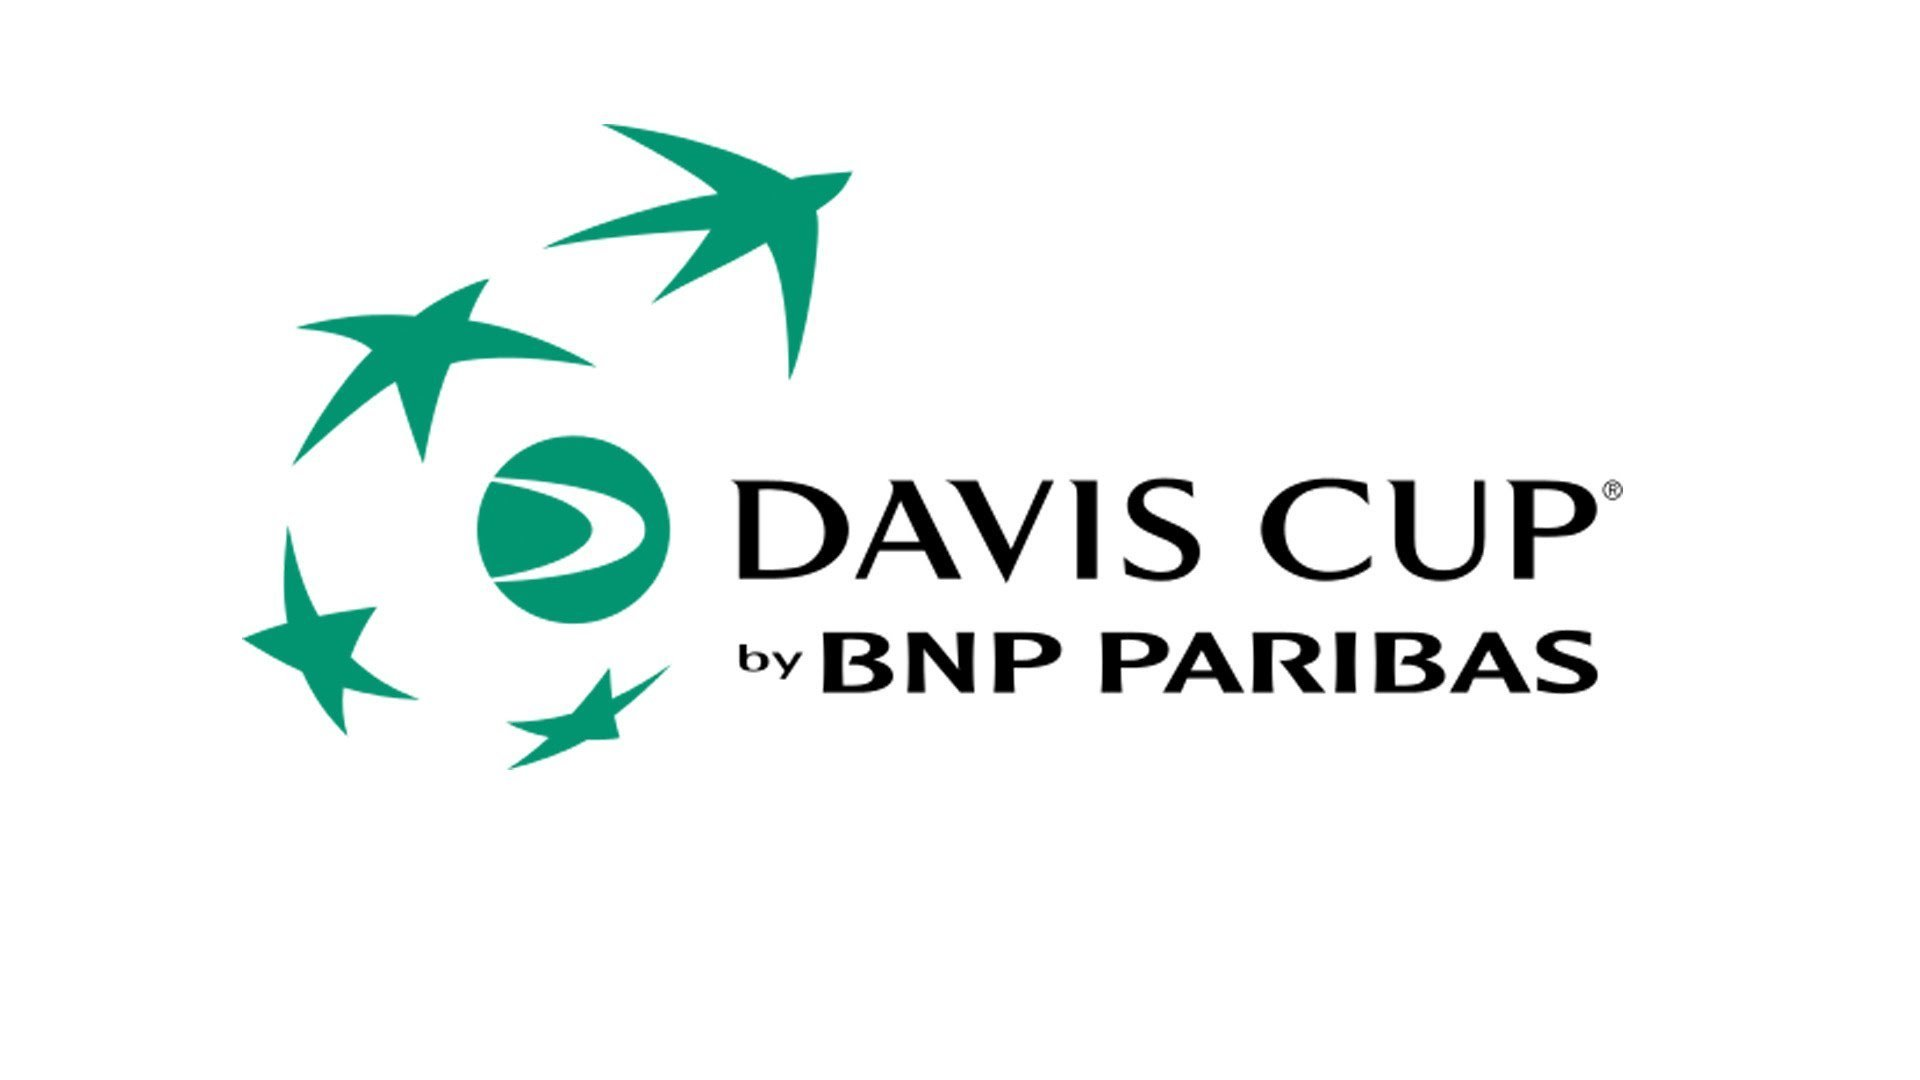 [img]http://movietvtechgeeks.com/wp-content/uploads/2015/03/davis-cup-logo-images-2015.jpg[/img]